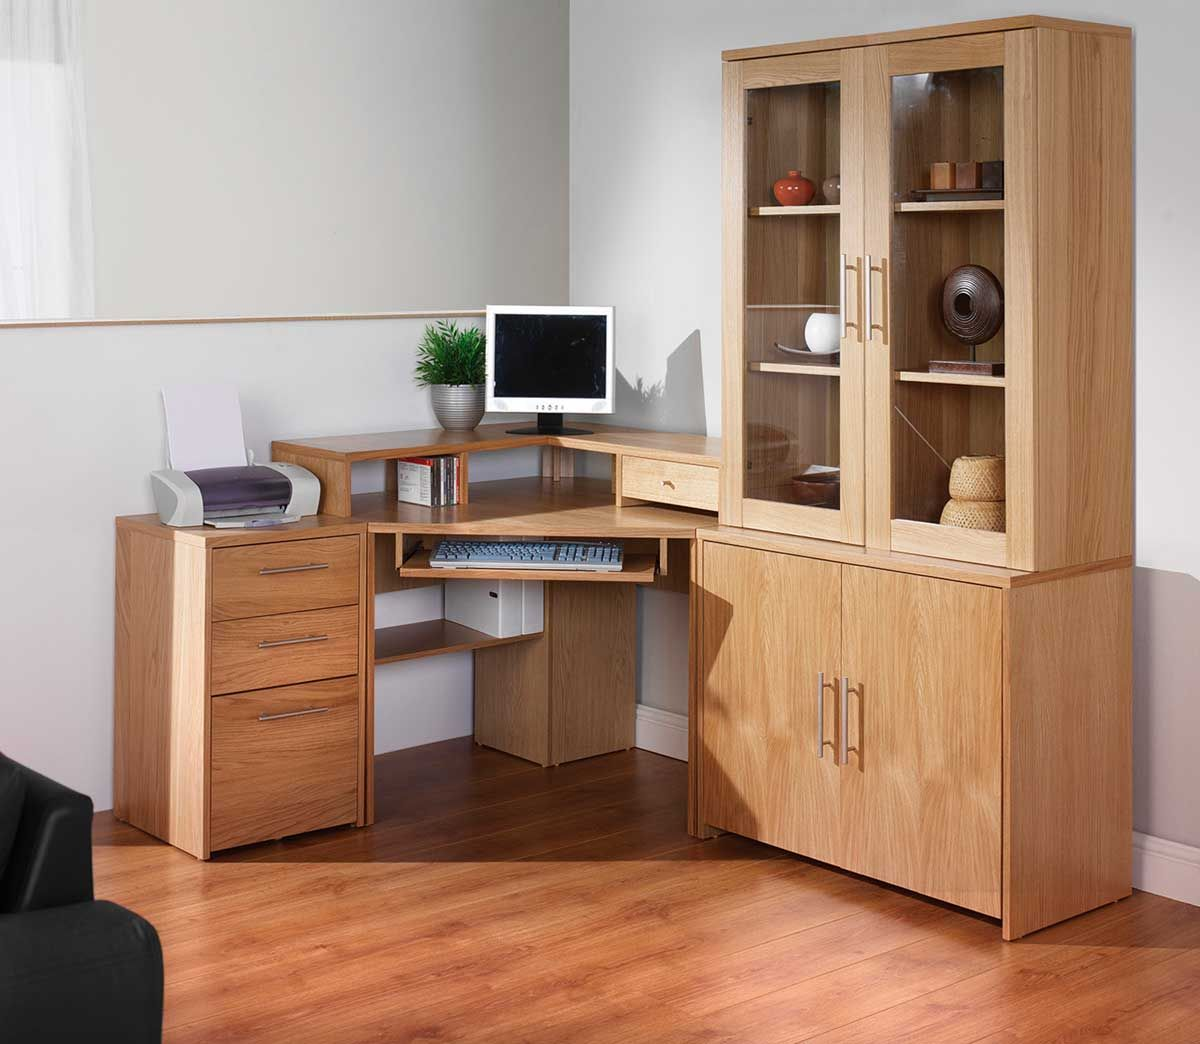 Solid Wood Office Corner Desks With Storage Home Office Furniture Desk Modern Home Office Furniture Contemporary Home Office Furniture